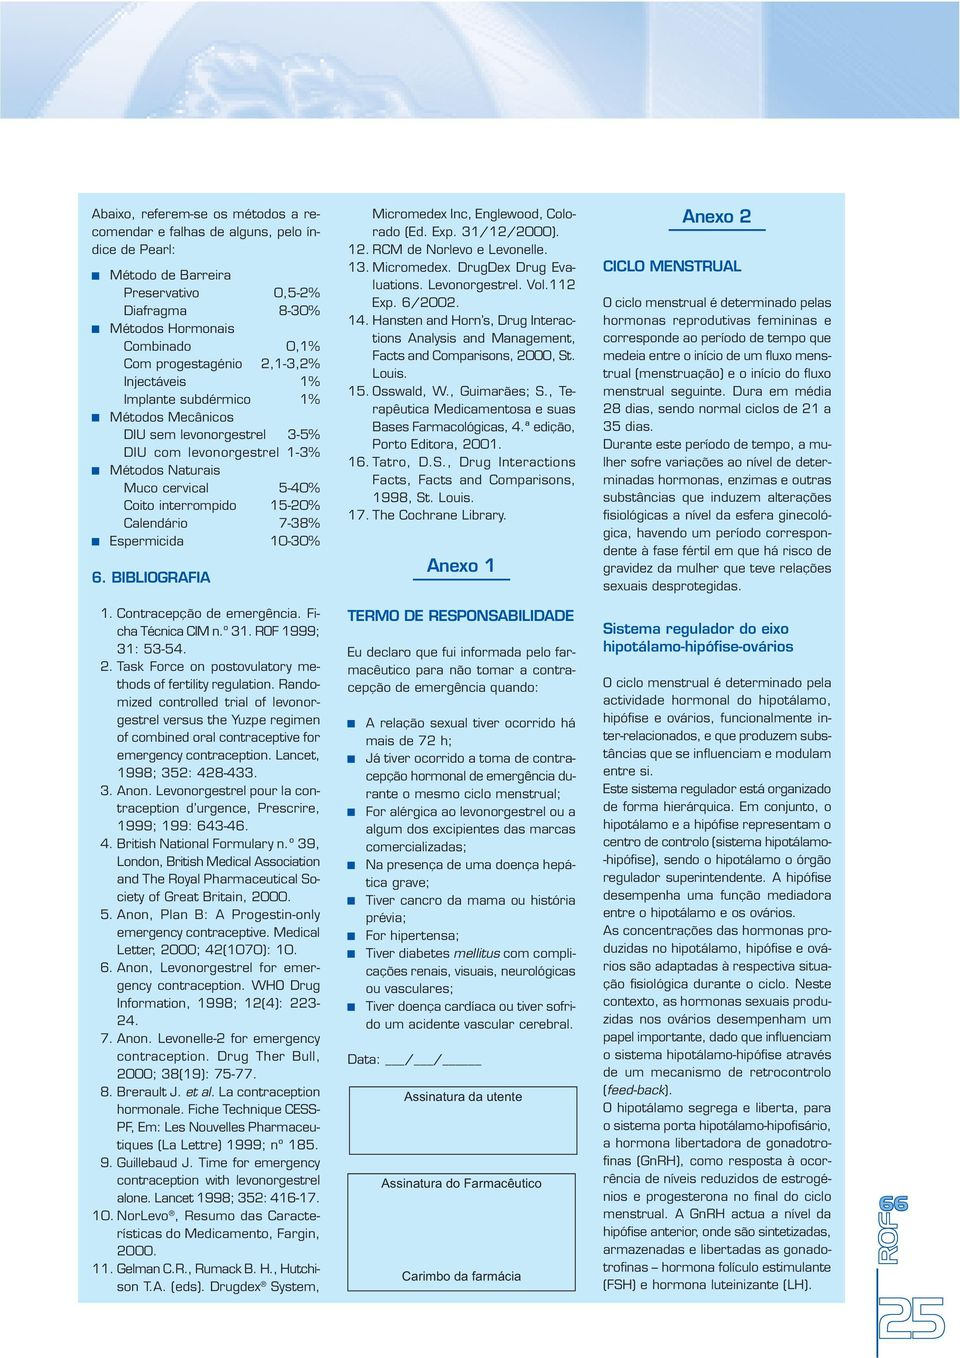 Espermicida 10-30% 6. BIBLIOGRAFIA Micromedex Inc, Englewood, Colorado (Ed. Exp. 31/12/2000). 12. RCM de Norlevo e Levonelle. 13. Micromedex. DrugDex Drug Evaluations. Levonorgestrel. Vol.112 Exp.